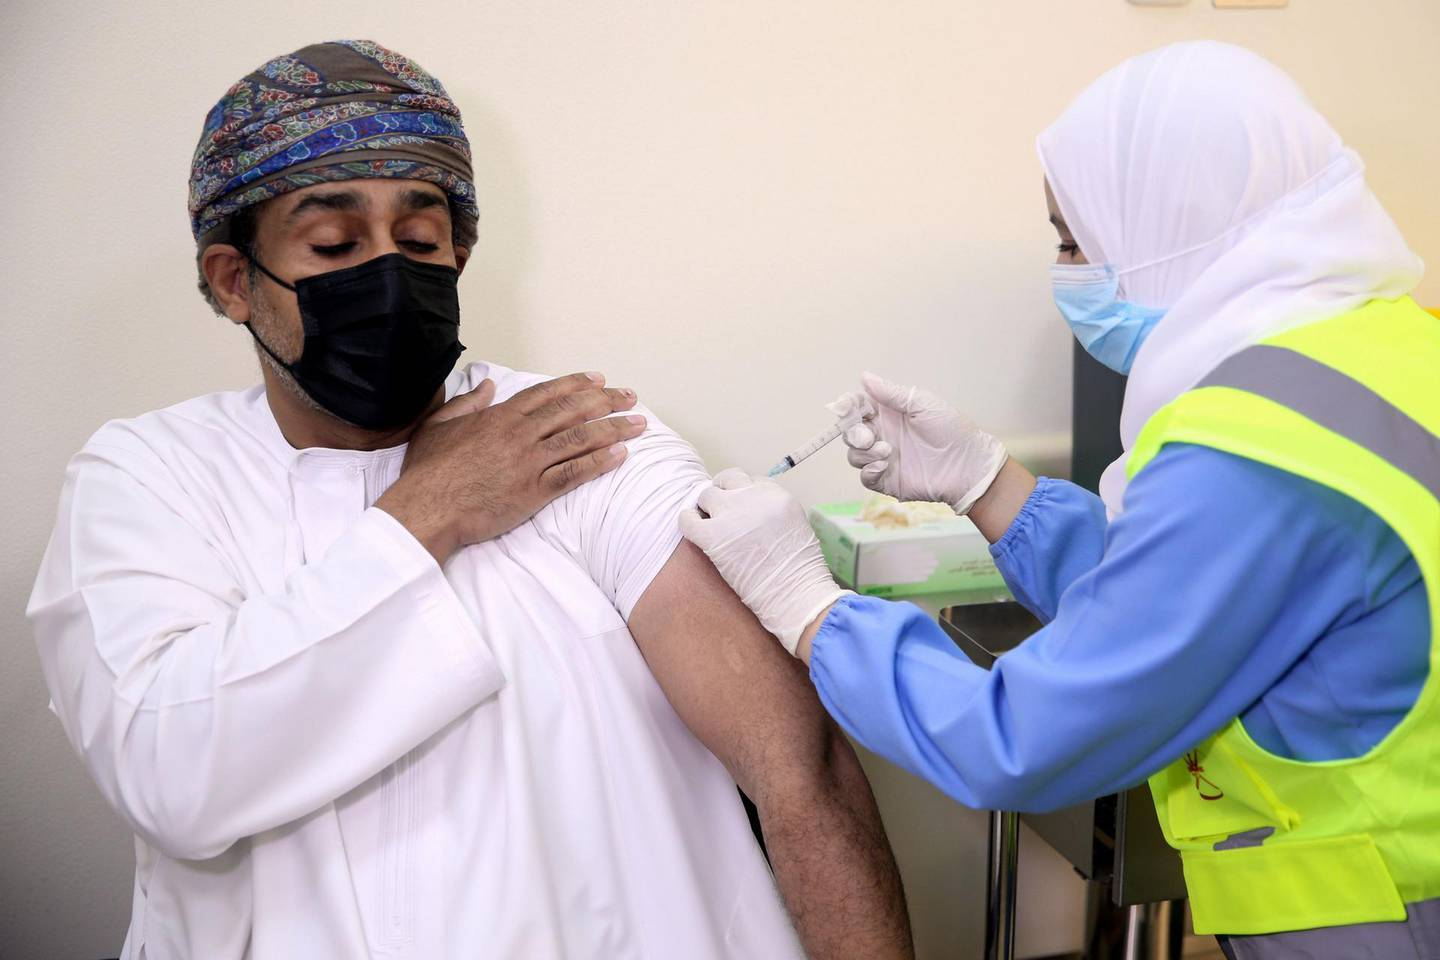 A man receives his first dose of the Pfizer-BioNTech COVID-19 vaccine in the Omani capital Muscat on December 27, 2020. / AFP / MOHAMMED MAHJOUB